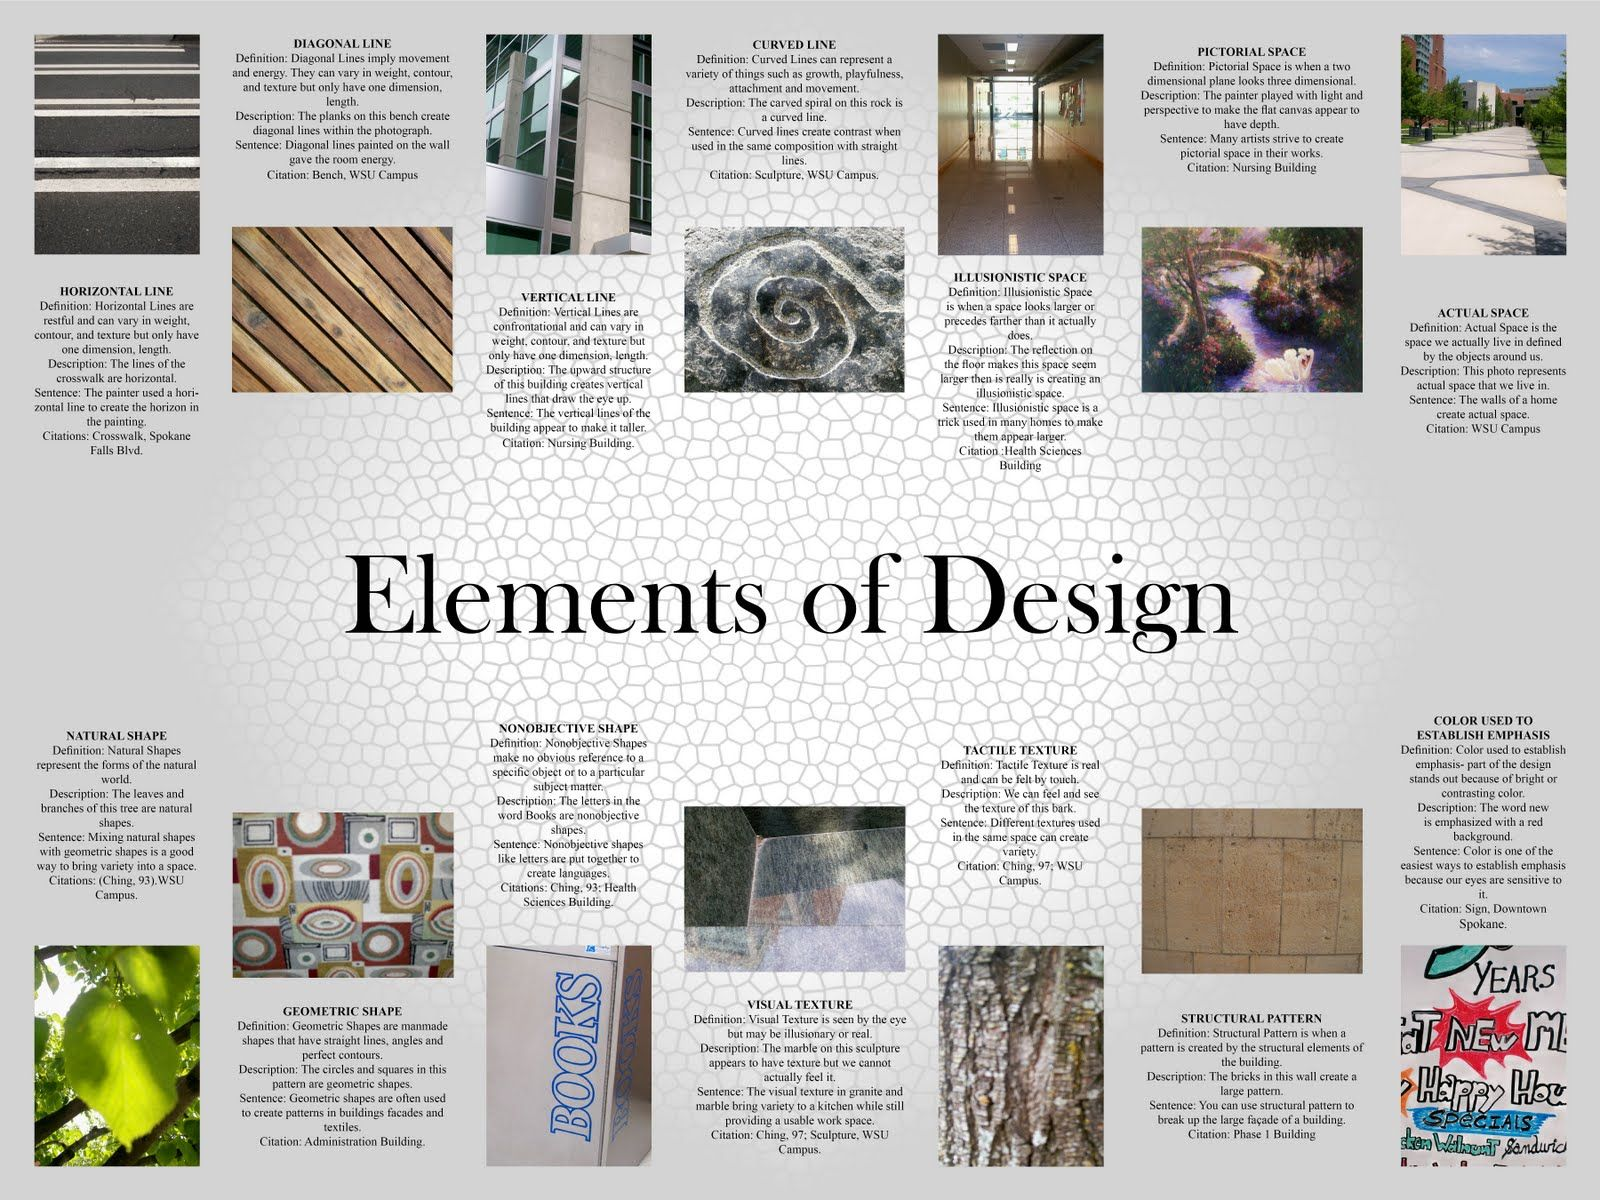 elements and principles of design in fashion photography - Google ...